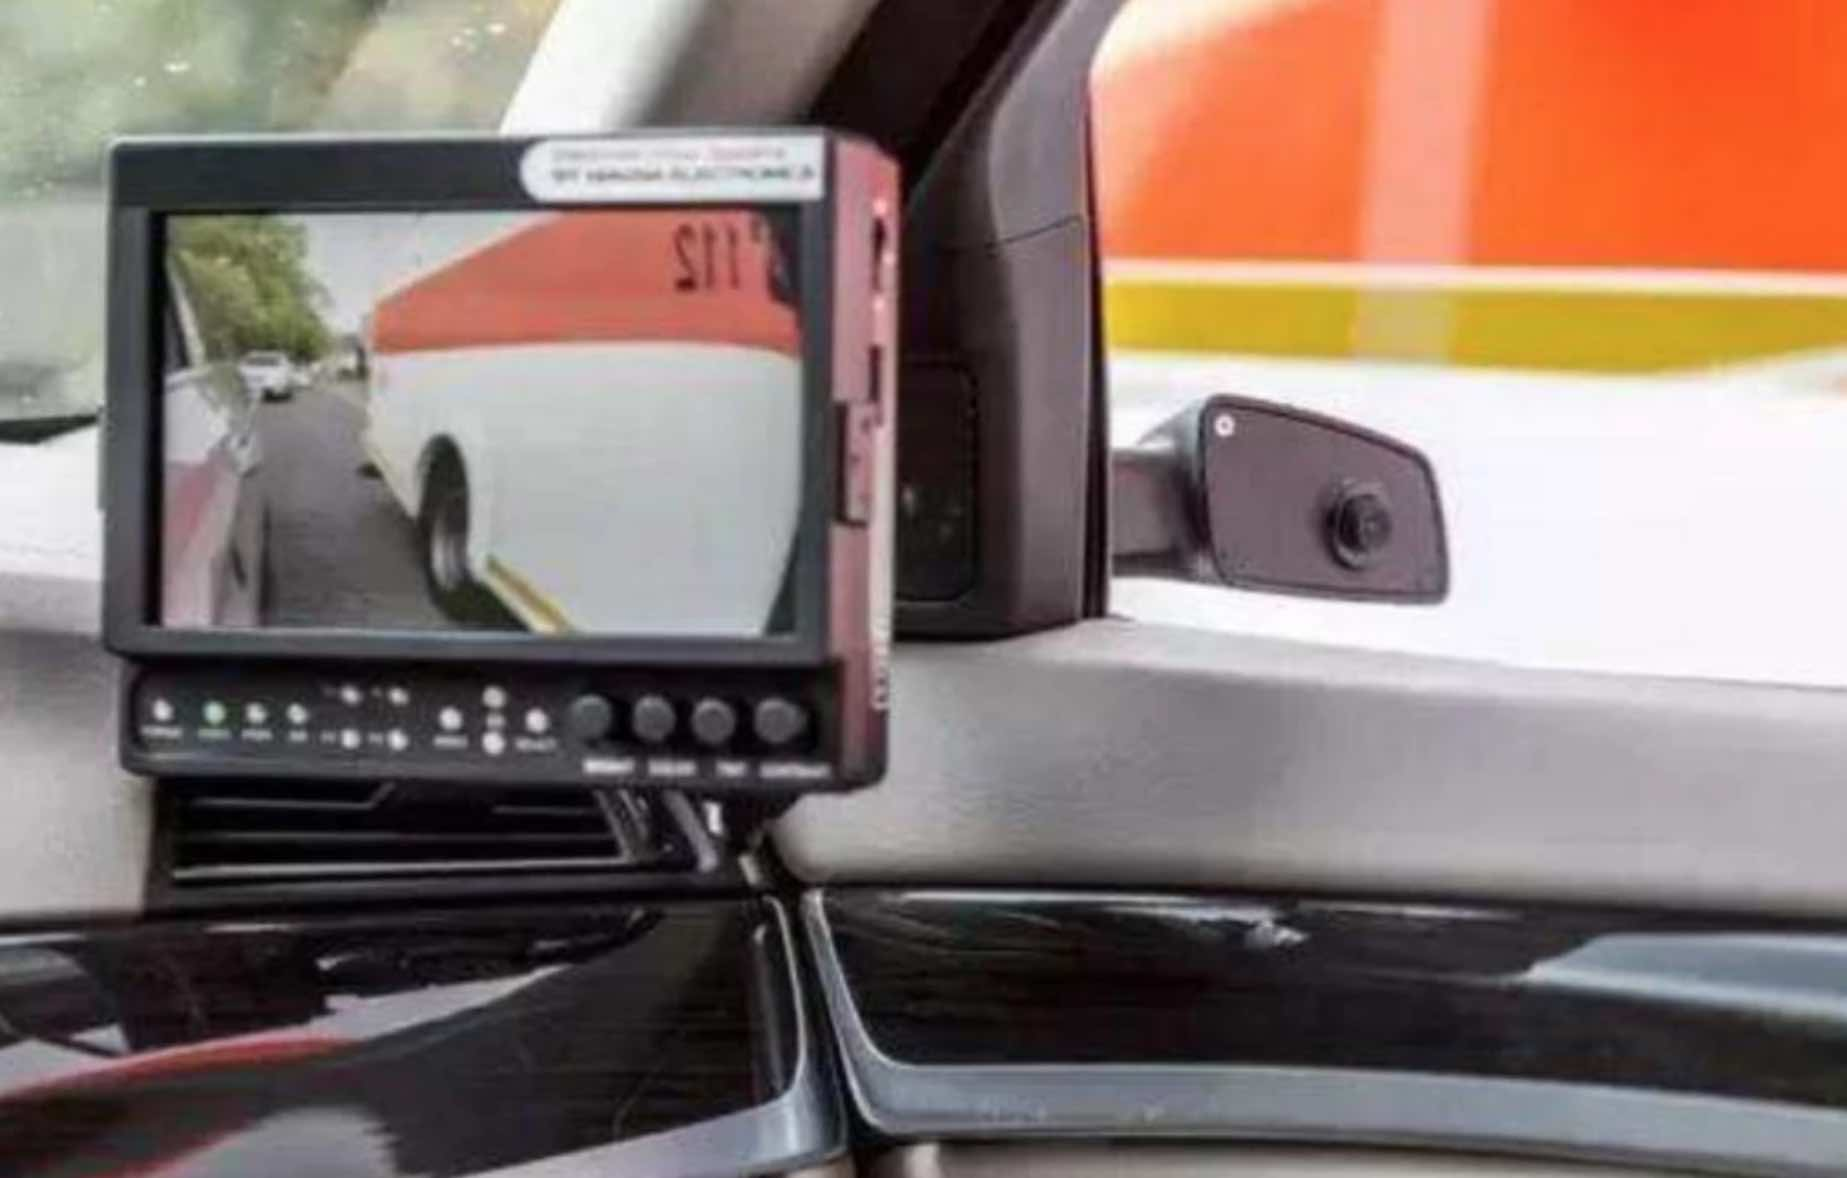 side-view mirror backup camera and LCD display